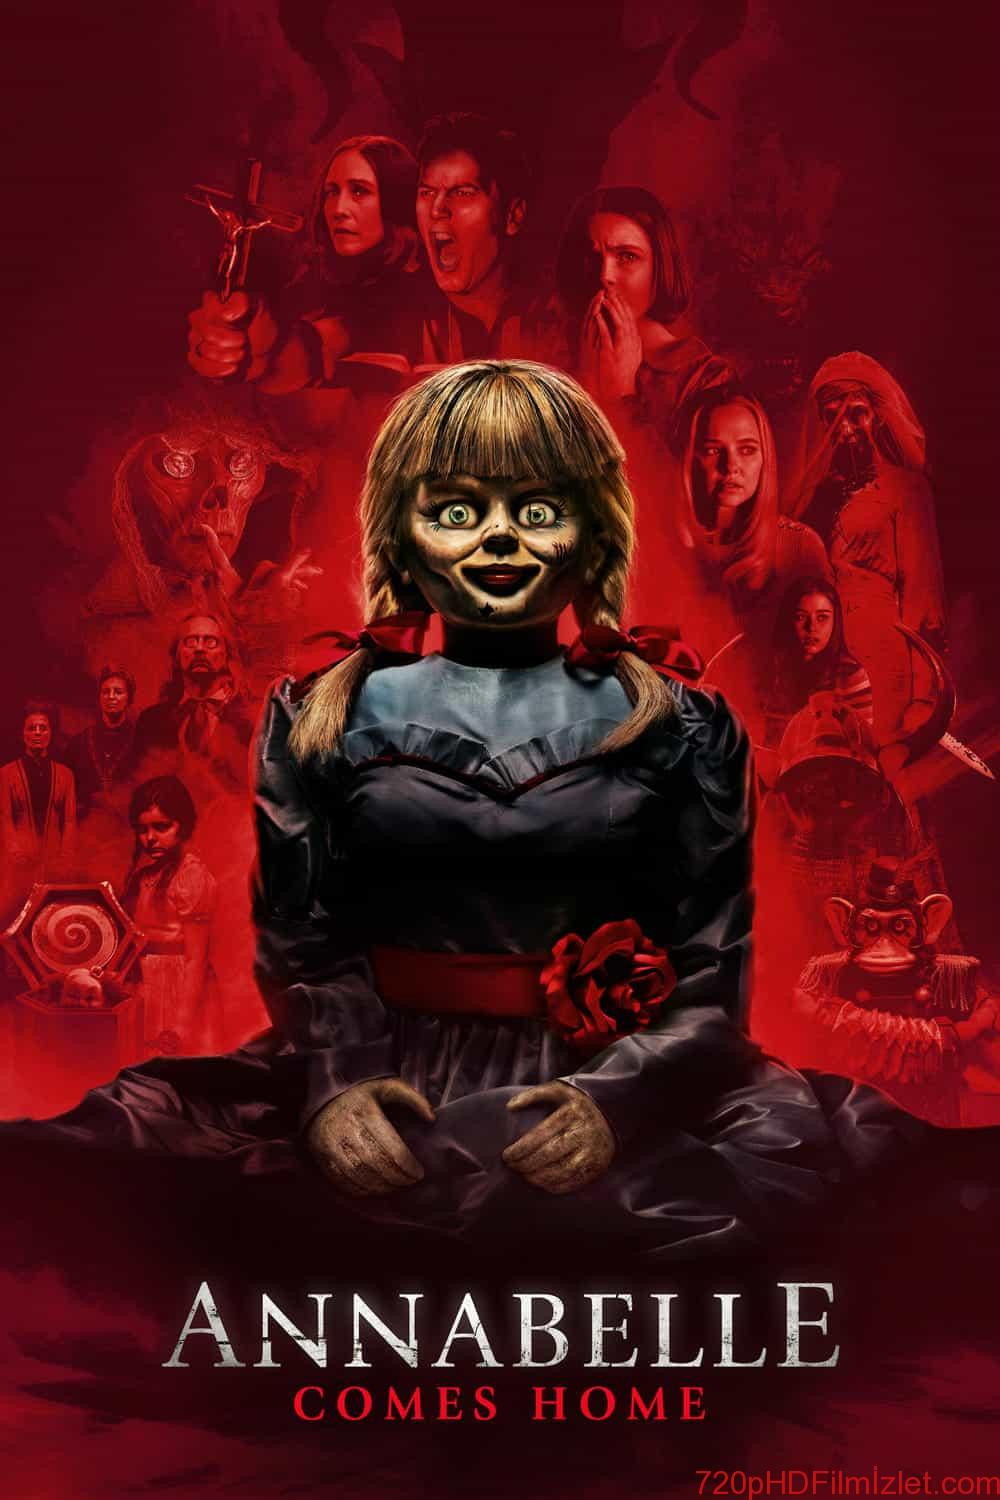 Annabelle 3 : Comes Home